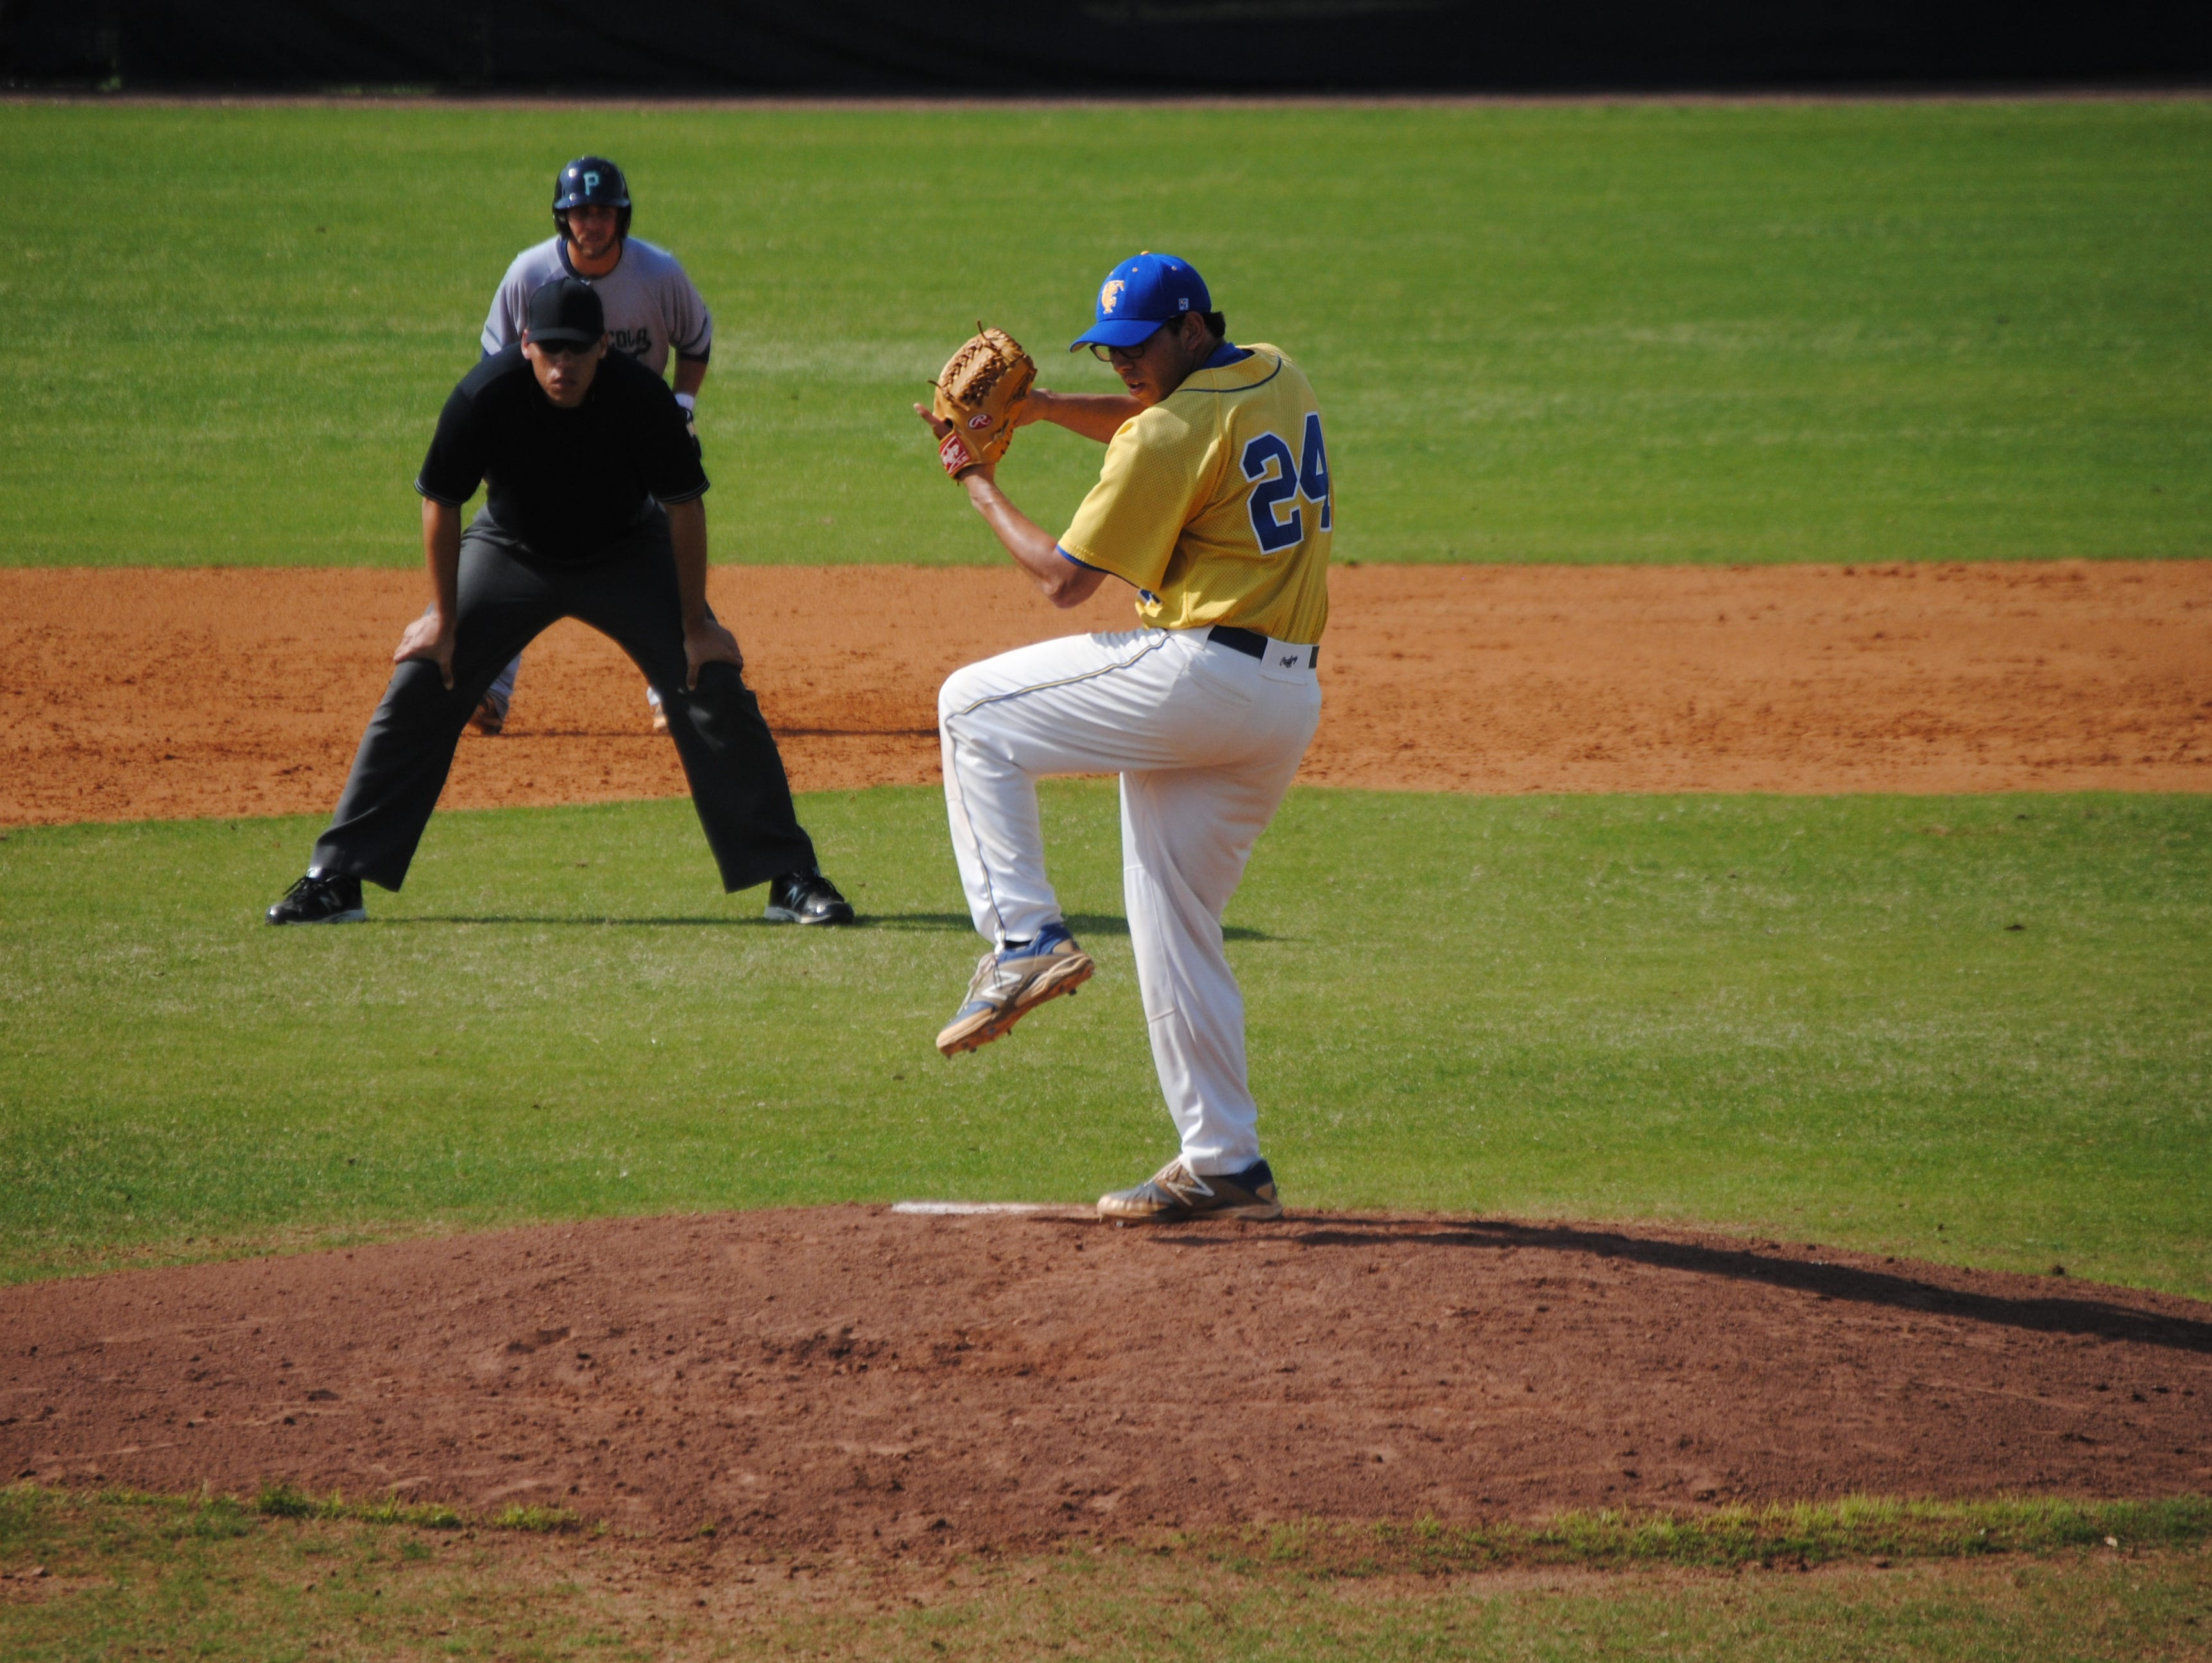 TCC pitcher Thomas Nicoll throws during a game this past season. Nicoll, a former Leon star, just completed his first year at TCC.